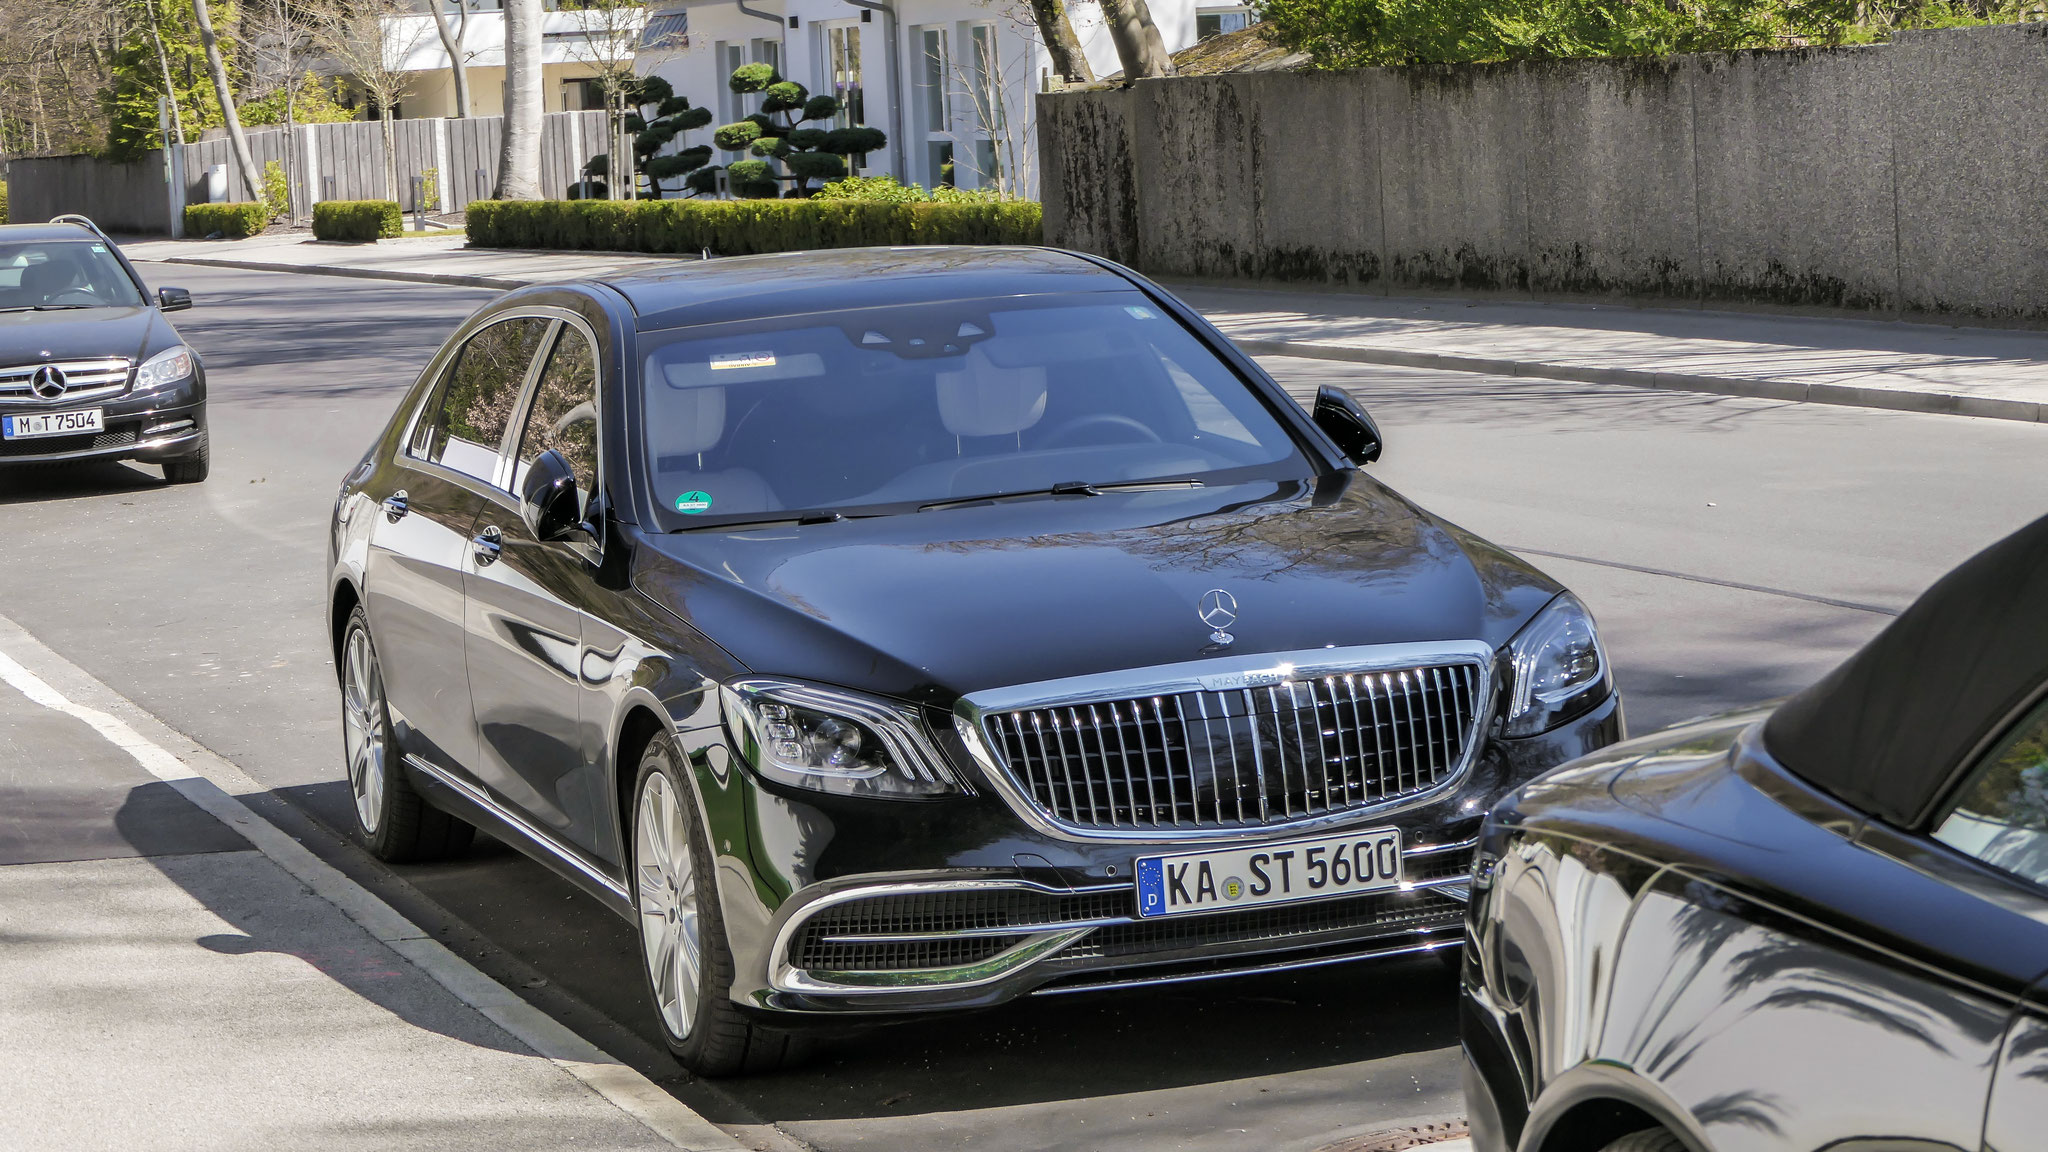 Mercedes Maybach S560 - KA-ST-5600